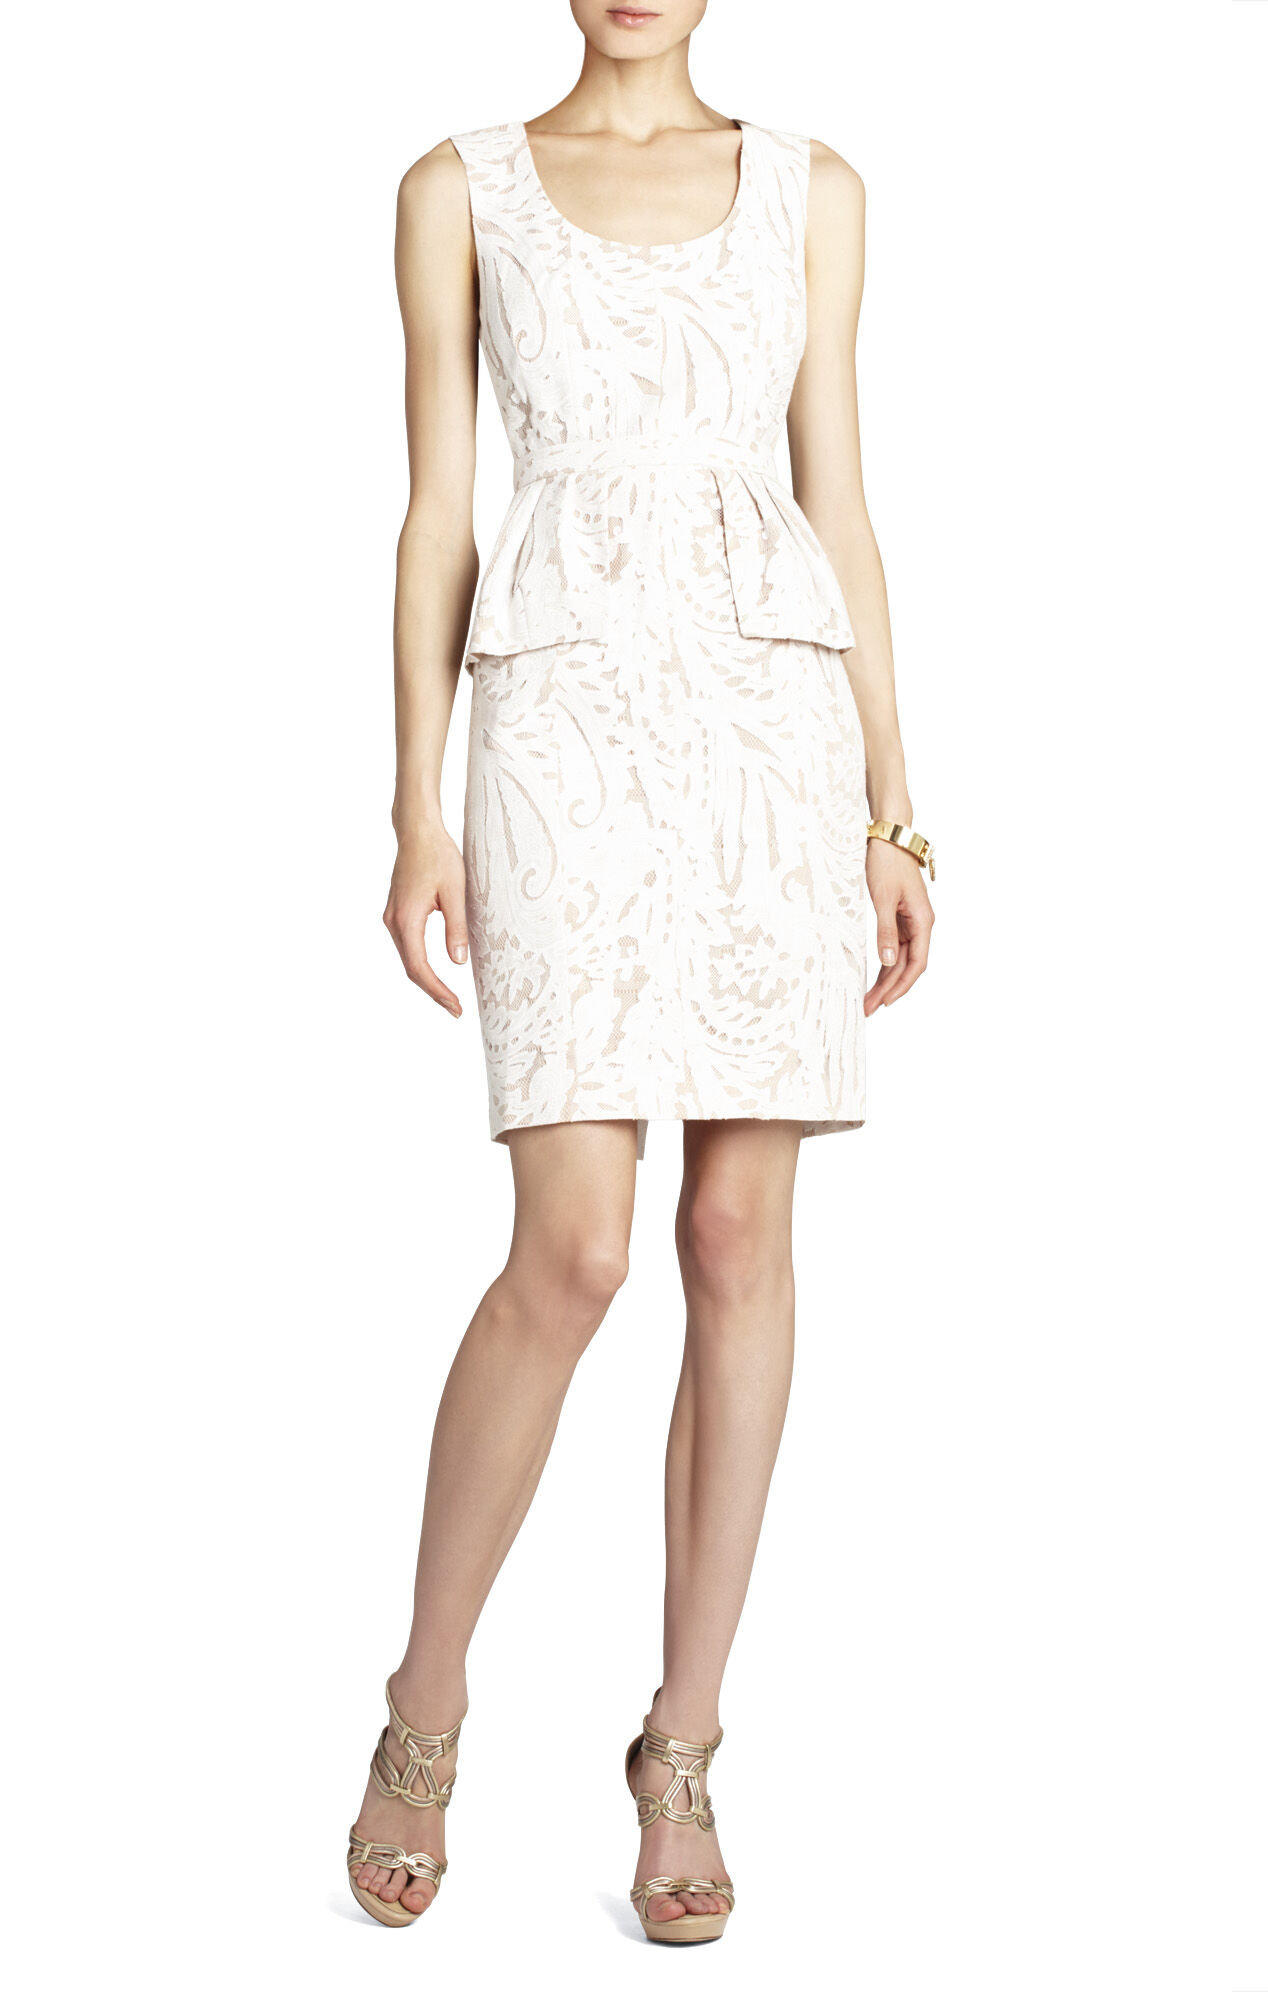 Etna Lace Peplum Cocktail Dress